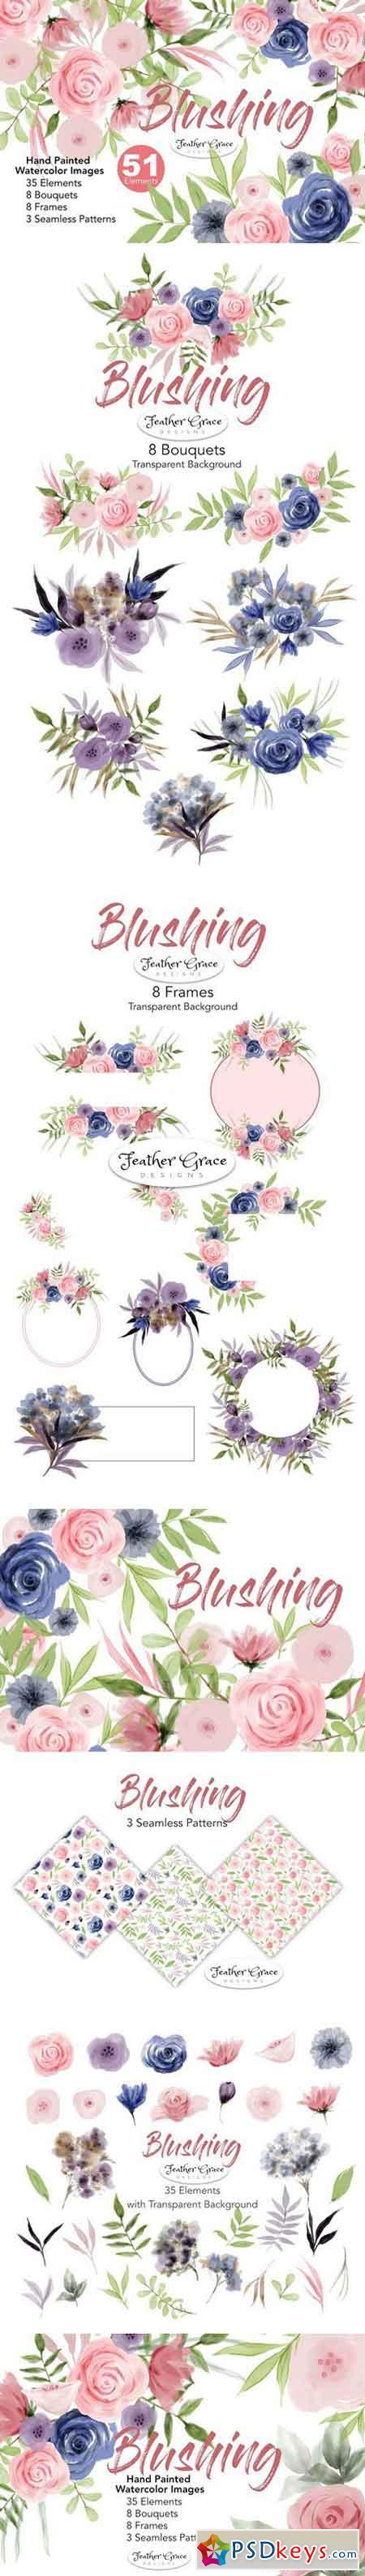 Watercolor Flower Clipart - Blushing 1870446